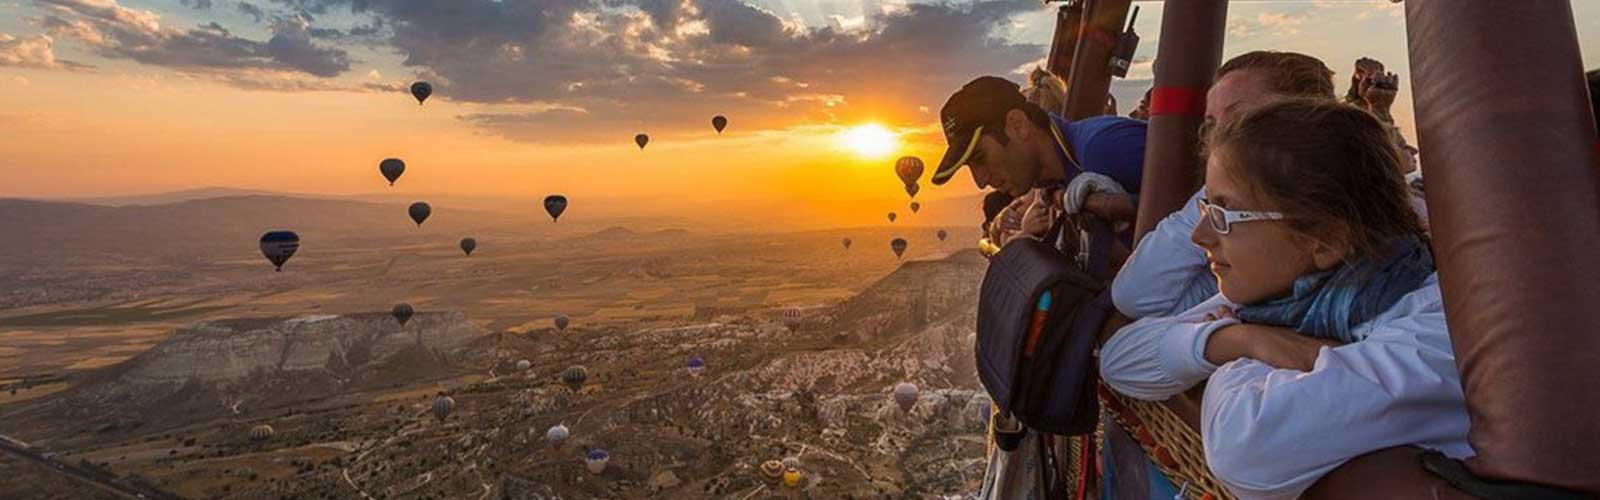 Cappadocia Balloon Family with Kids